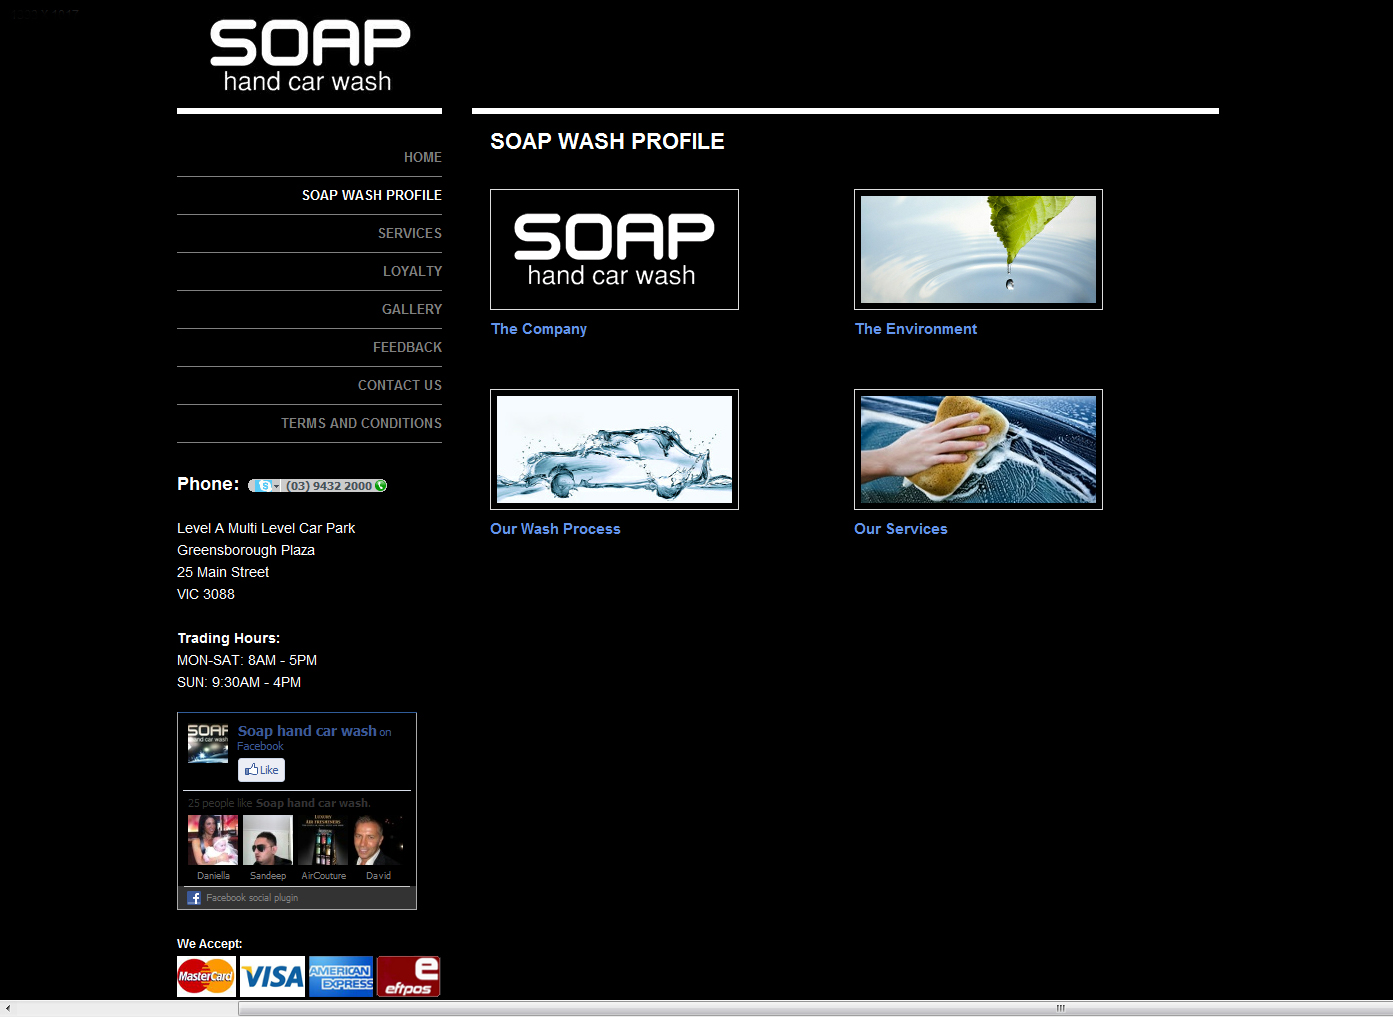 SOAP Hand Car Wash Screenshot